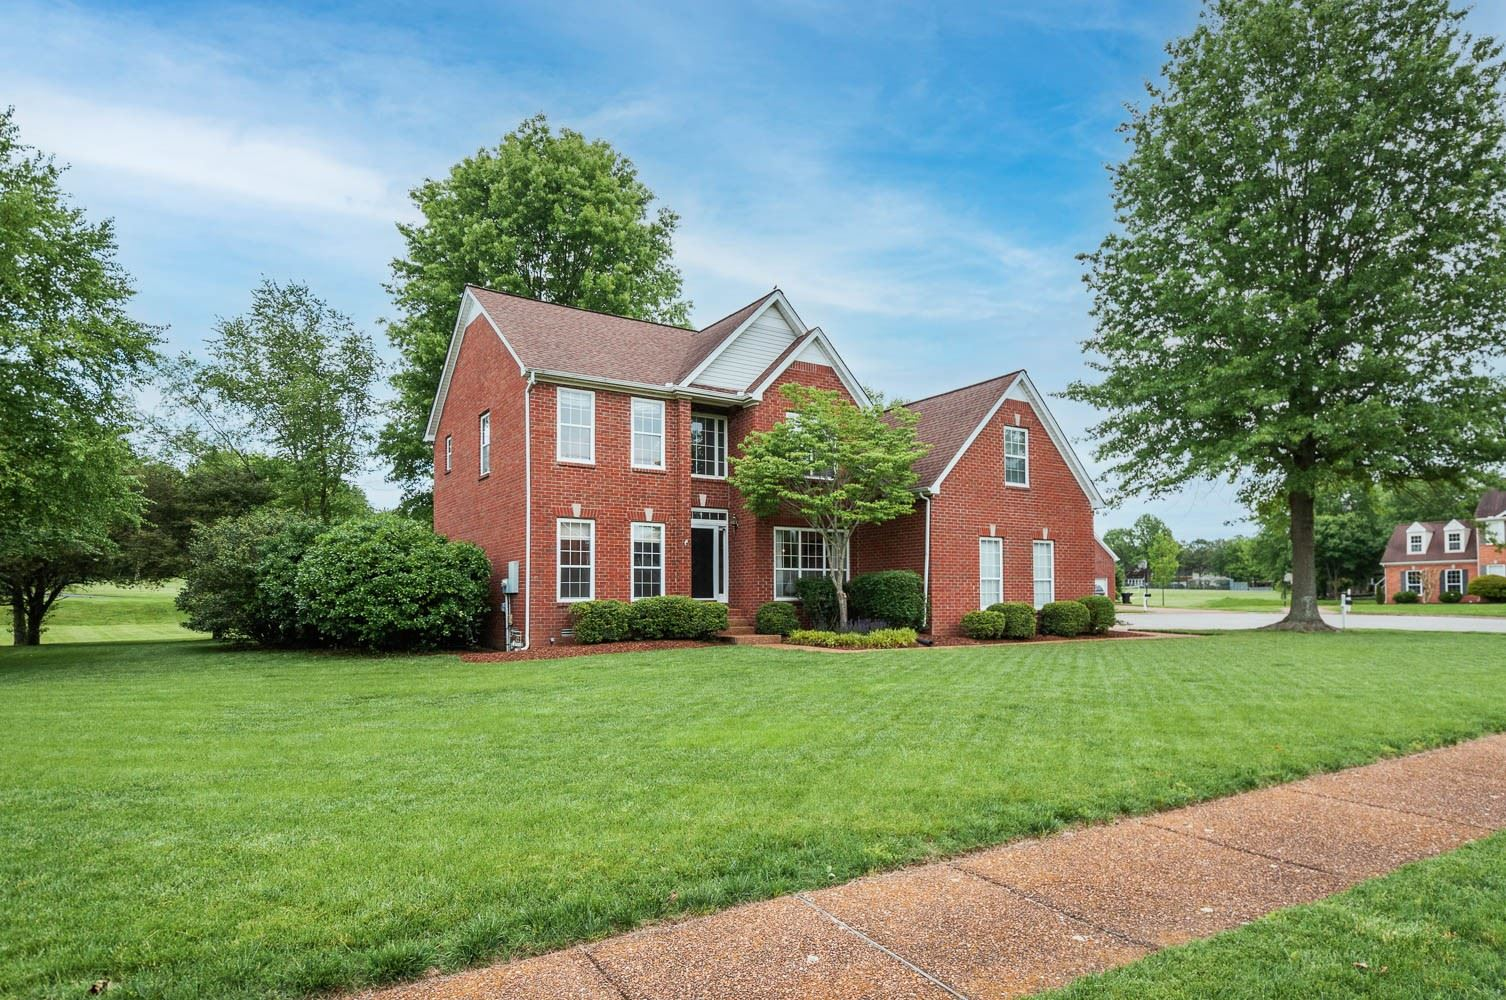 Photo of 108 Fielden Ct, Franklin, TN 37067 (MLS # 2252914)